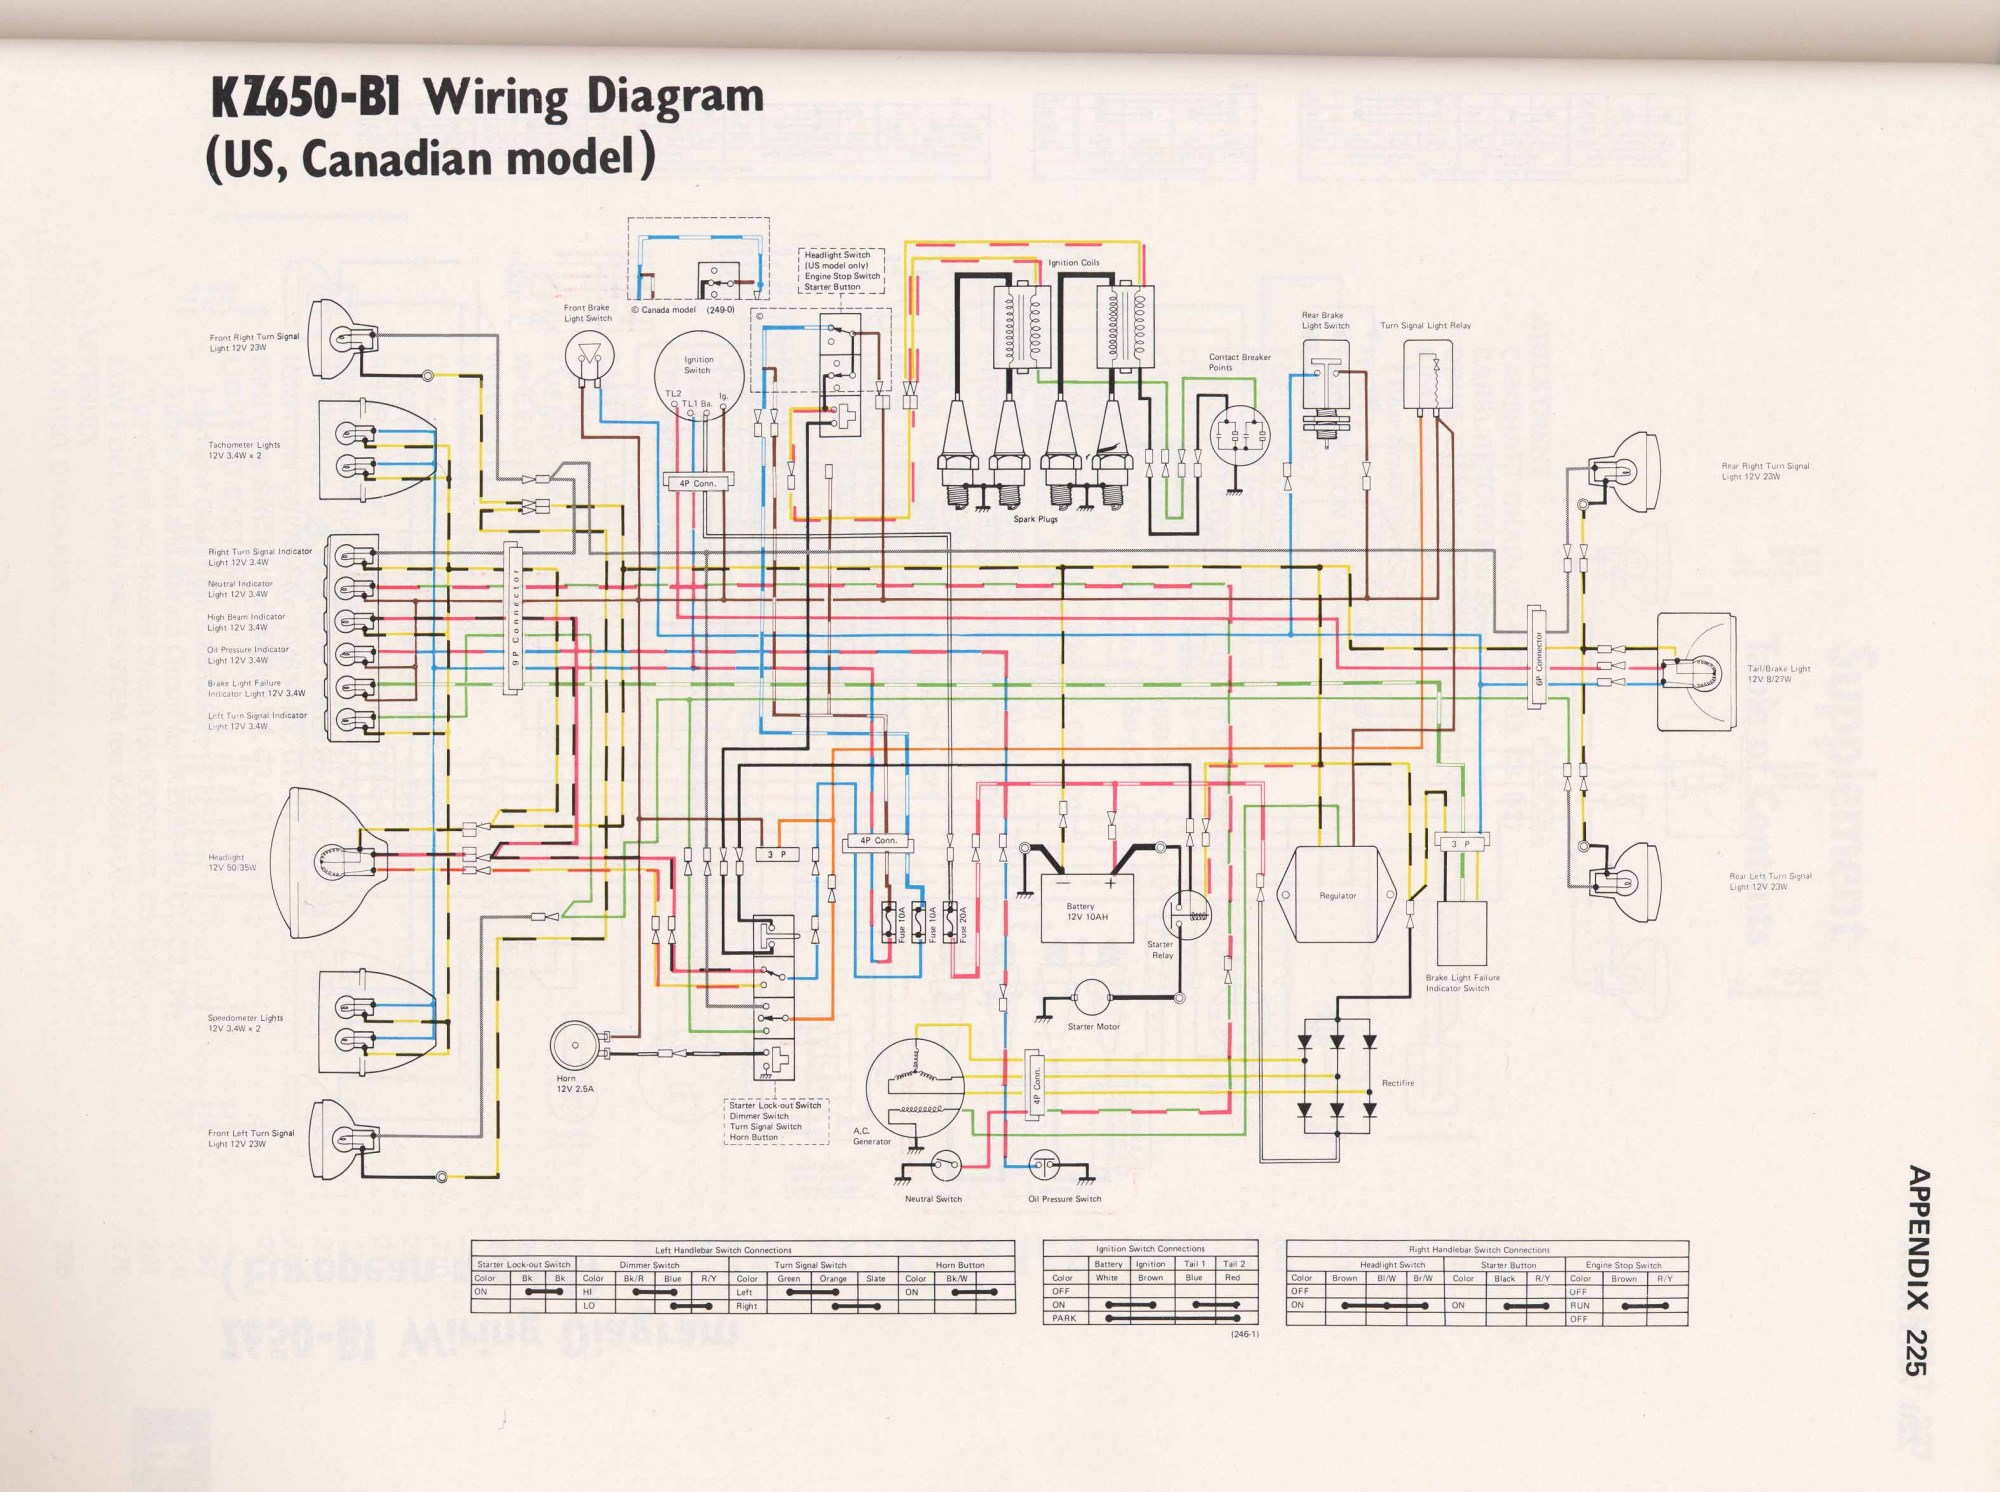 hight resolution of kz650 info wiring diagrams k z 650 wiring schematic